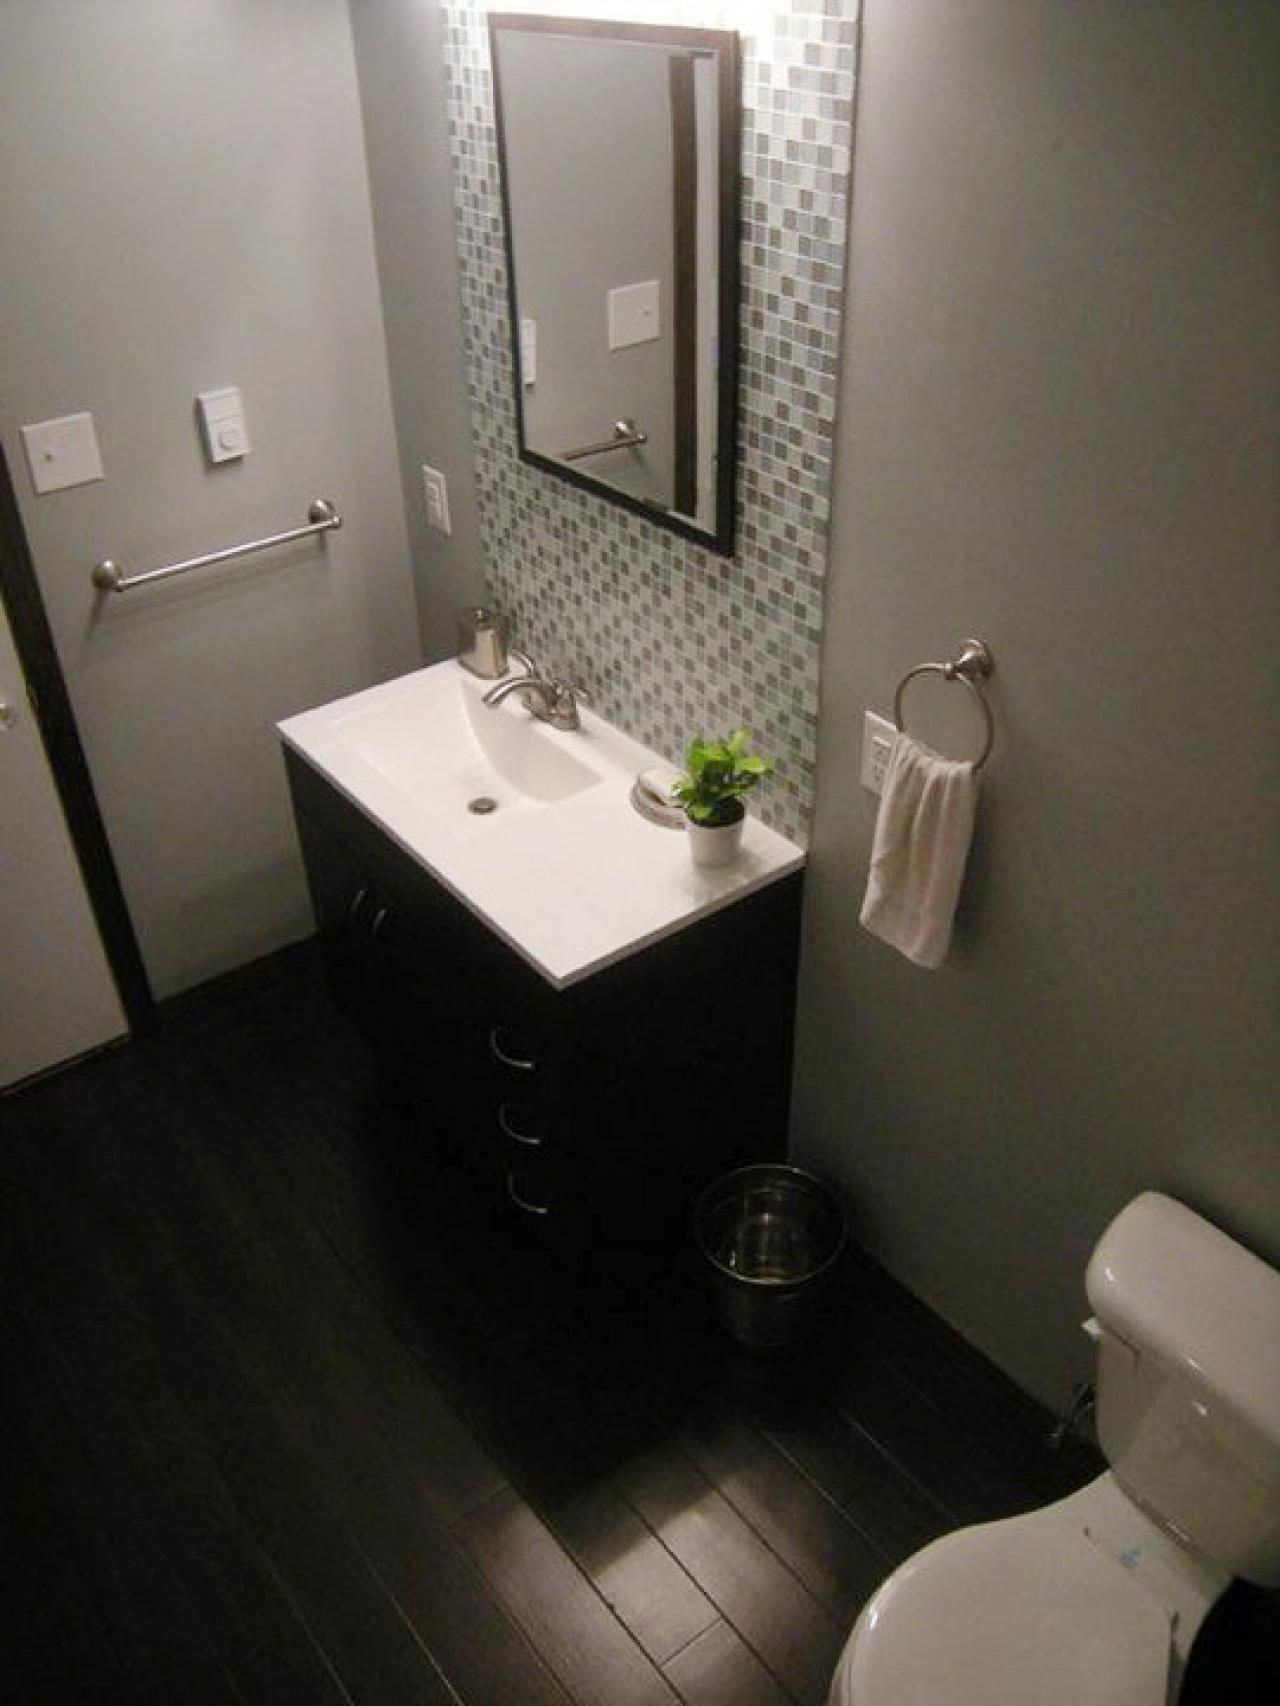 Economic Bathroom Designs Budgeting For A Bathroom Remodel  Budget Bathroom Remodel Budget